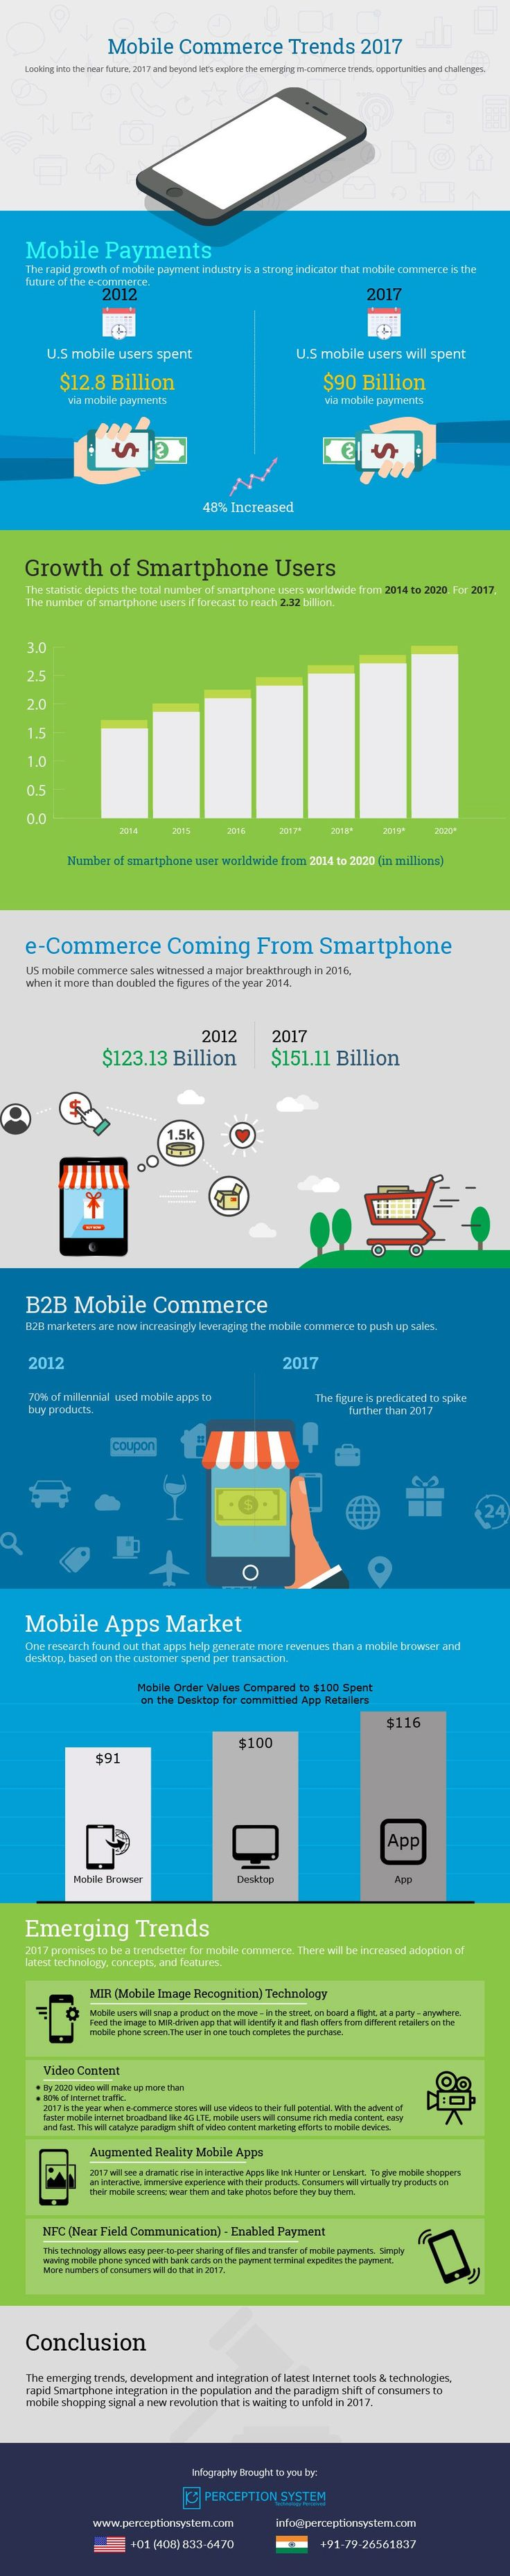 Mobile Ecommerce Trends for 2017: What Online Shop Owners Need to Know [Infographic]